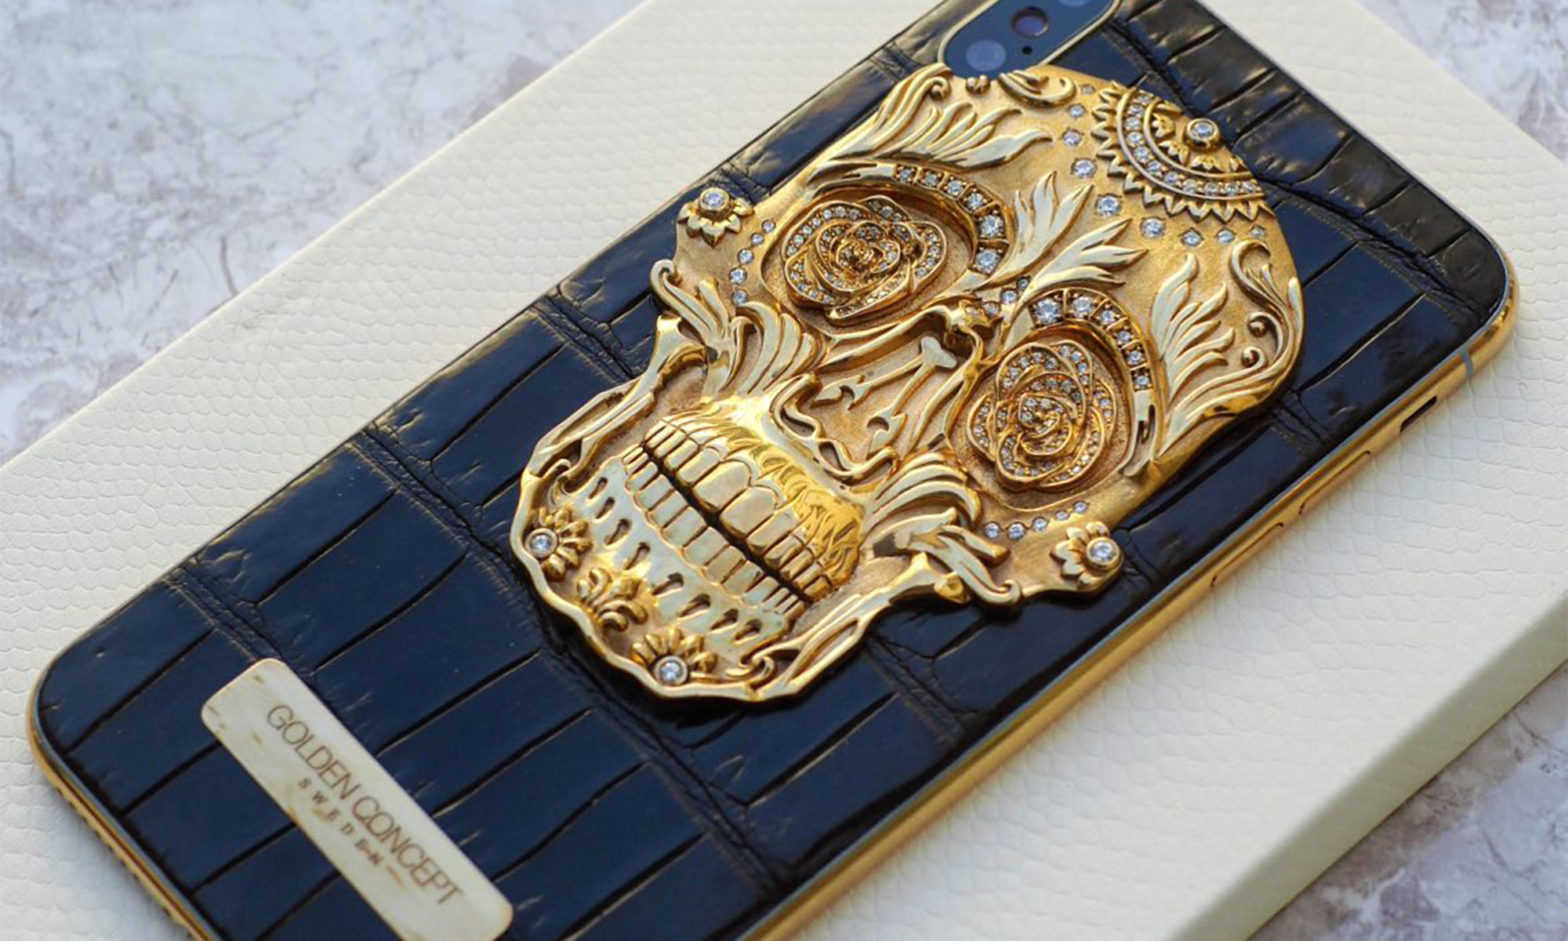 Golden Concept iPhone Sugar Skull Edition